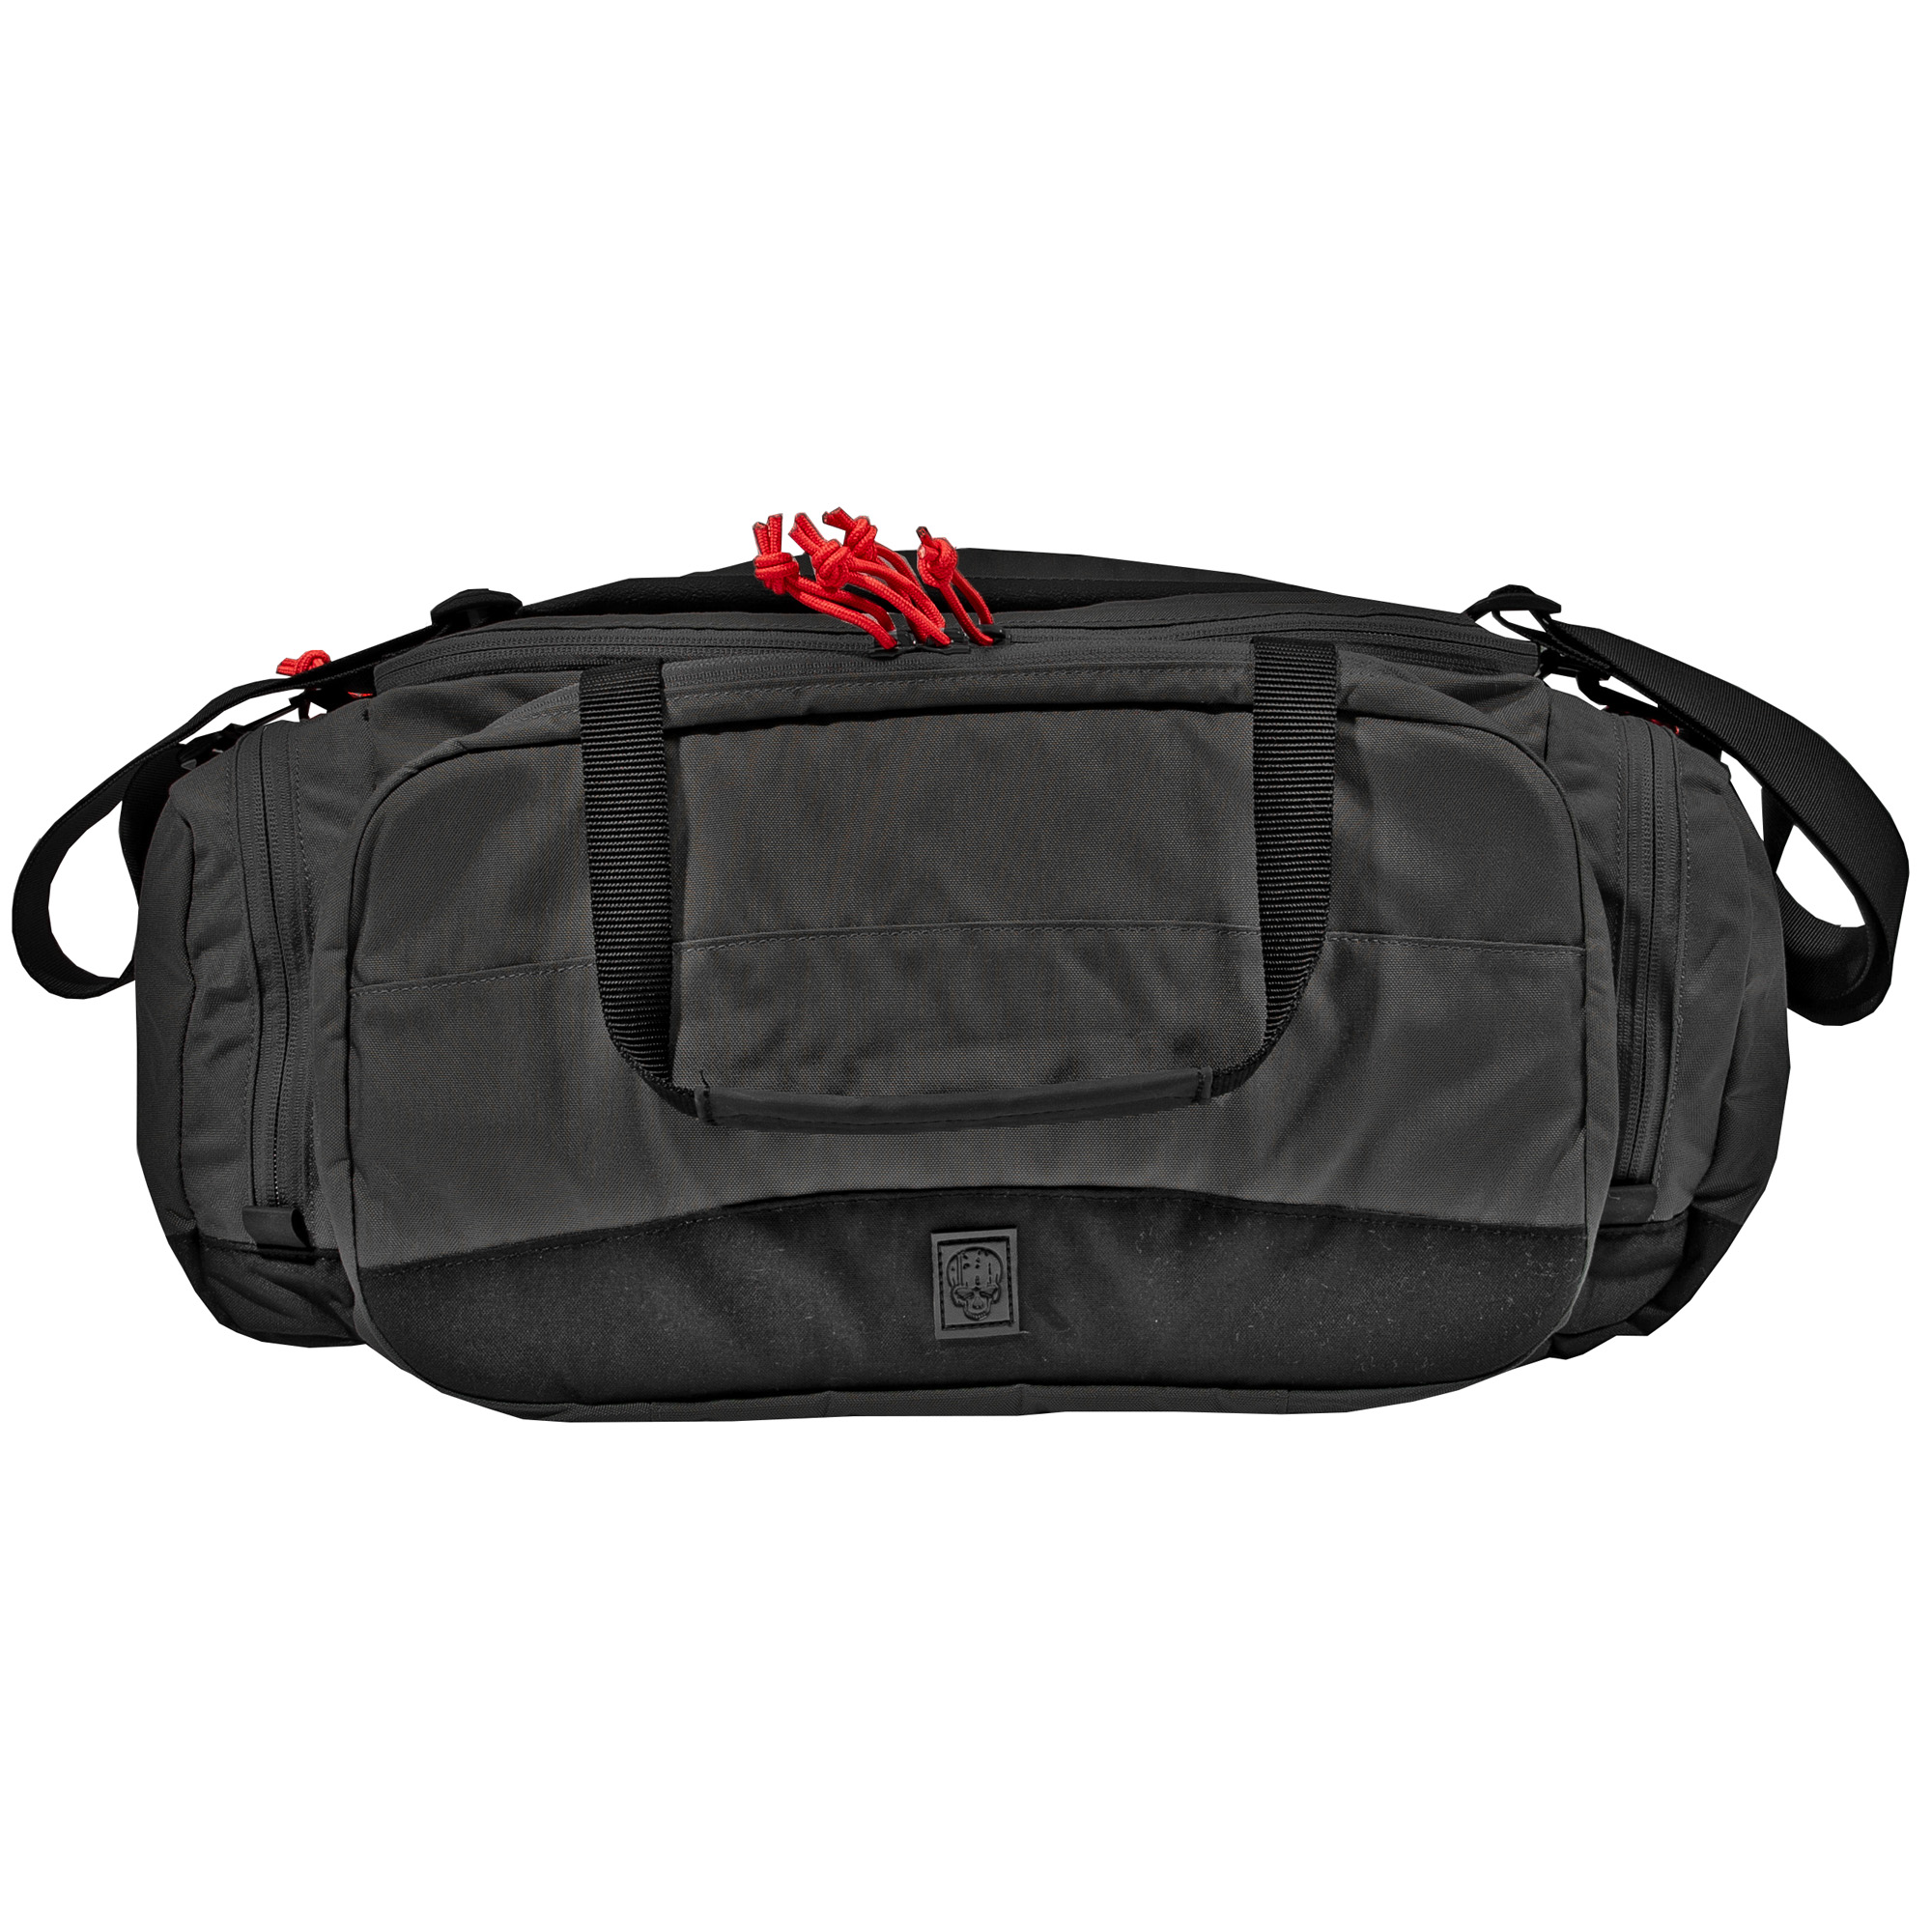 """The Grey Ghost Gear Range Bag will get you to the range with the kit that you need for a day on the range and keep it organized and handy. The bag measures 9 inches tall"""" 20 inches wide"""" and 7 inches deep. 1260 total cubic inches. It is constructed of 500D nylon Cordura. The strap is generous"""" padded and contoured to stay on the users shoulder when they have their hands full. It features full adjustability and is easily removed by disengaging the side release buckles on either side."""